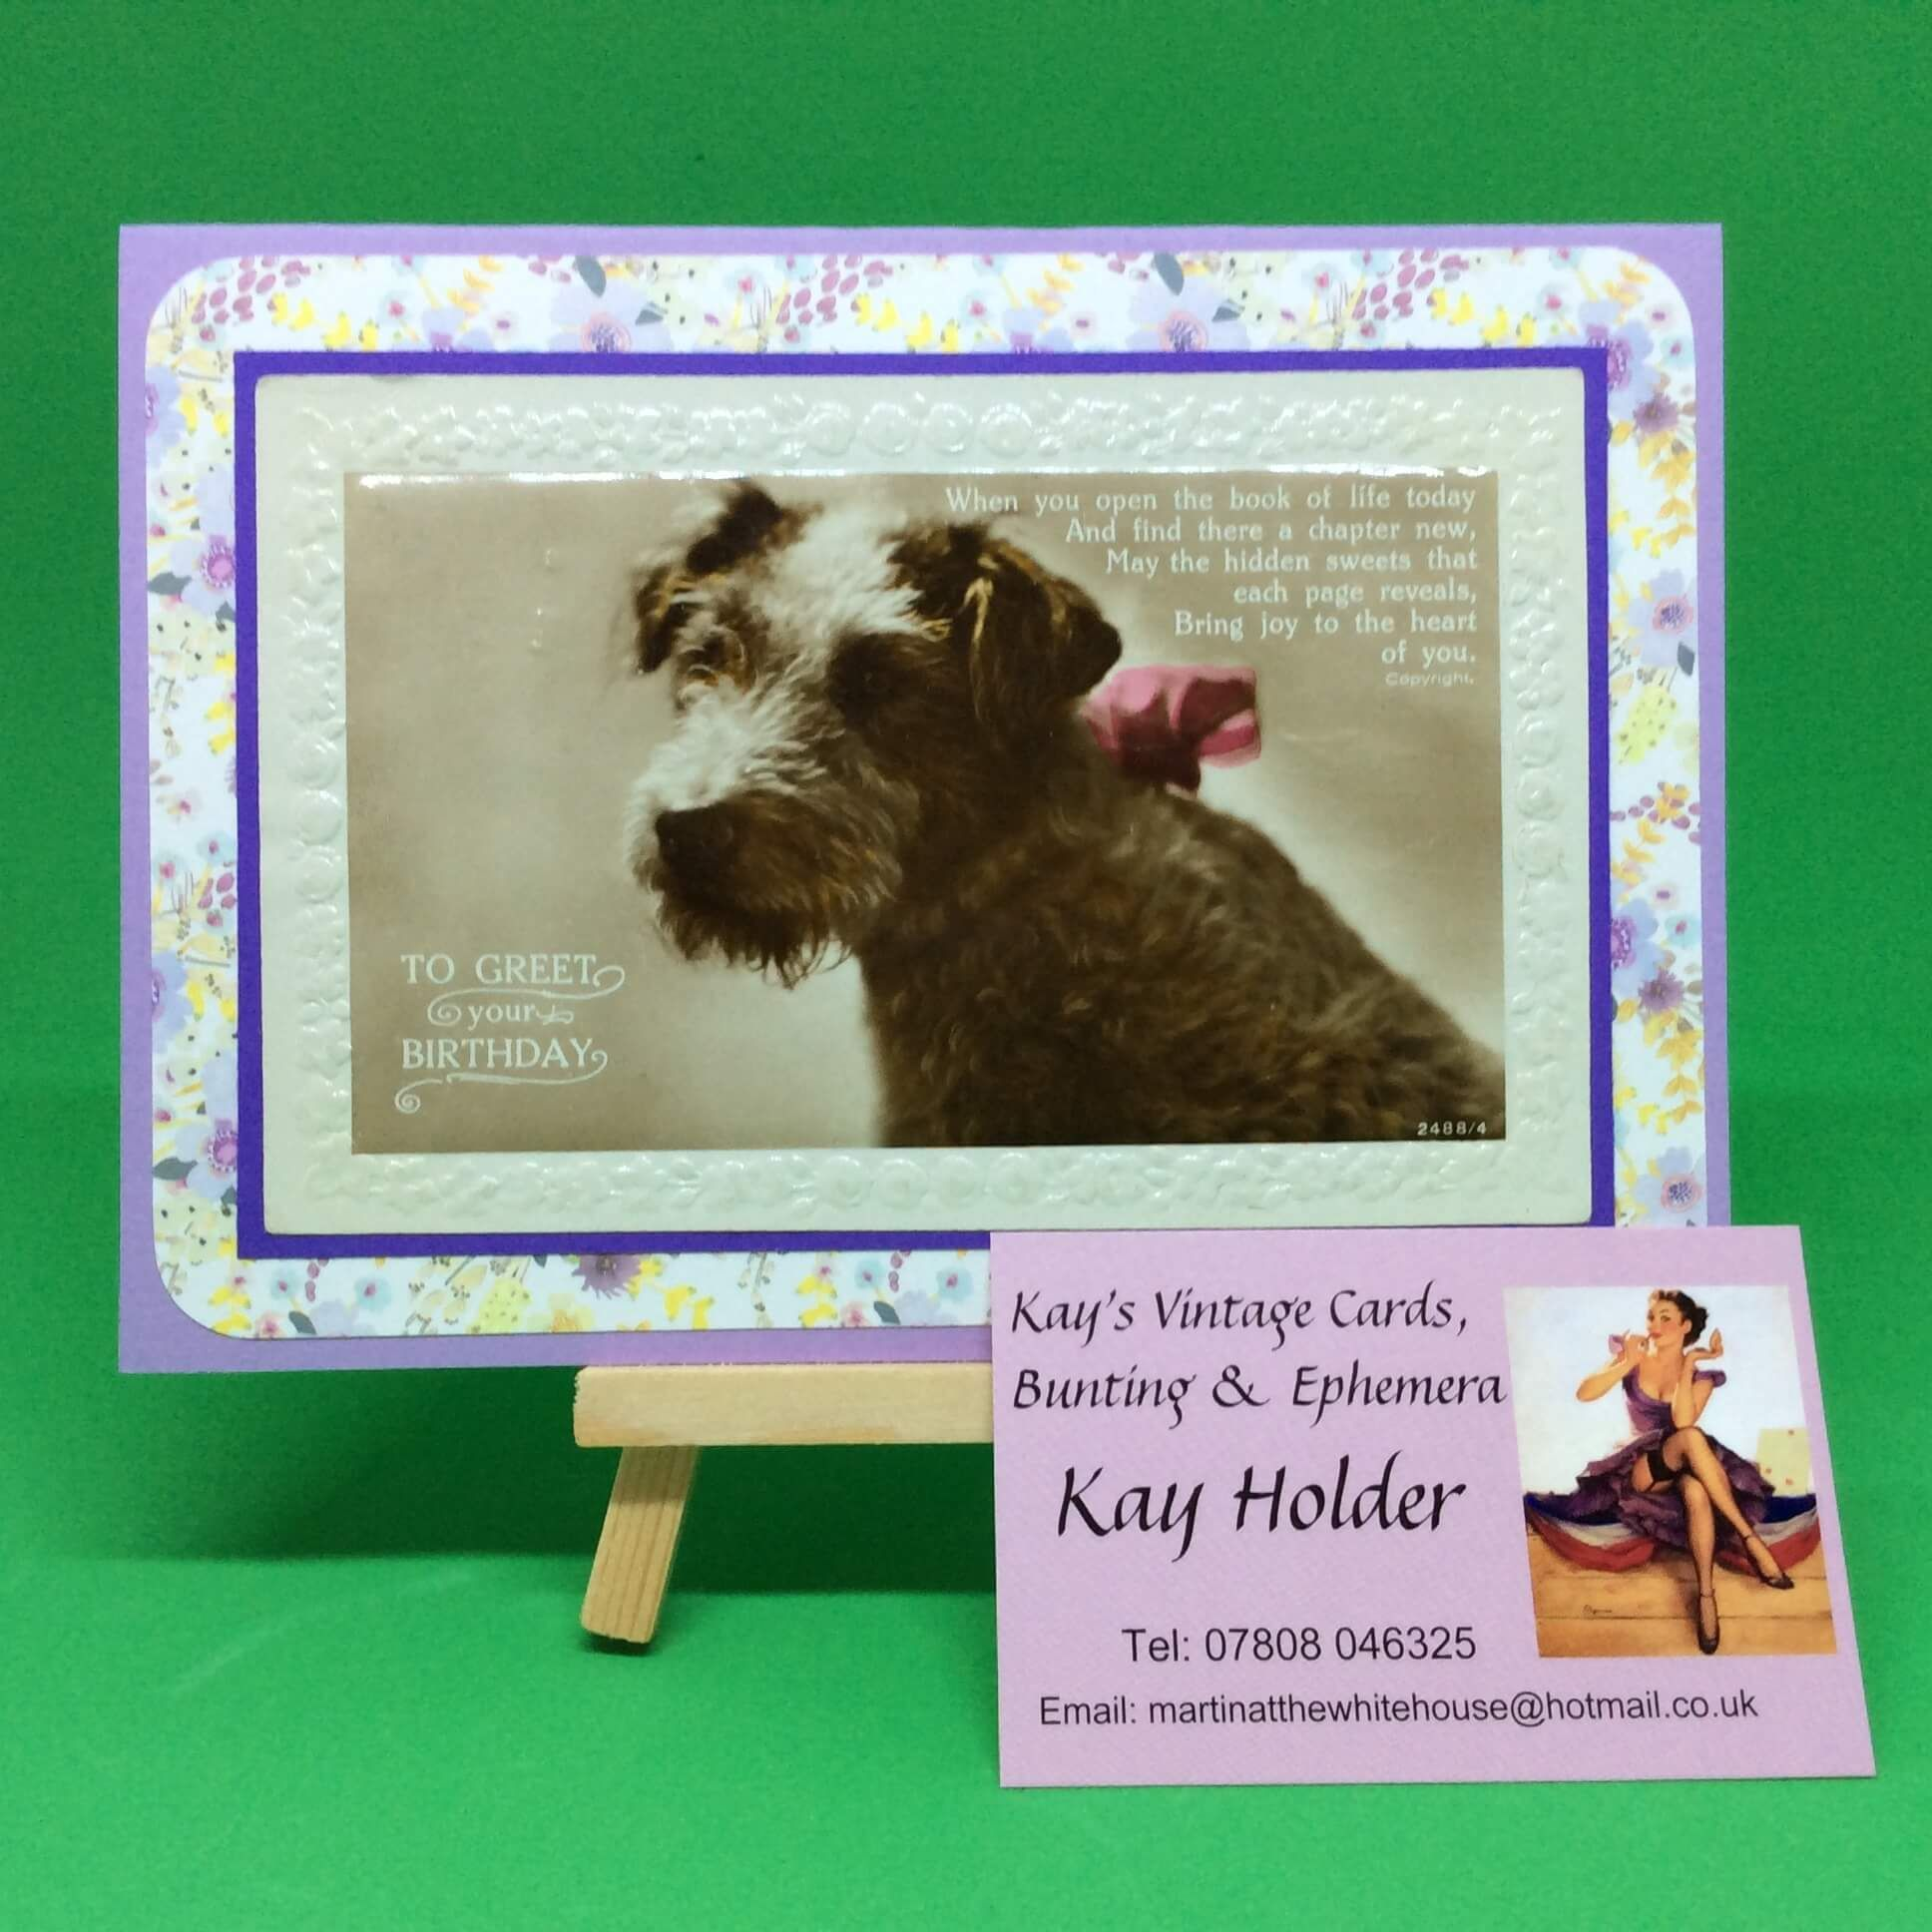 Beautiful Vintage Birthday Greetings Card Featuring Cute Little Dog